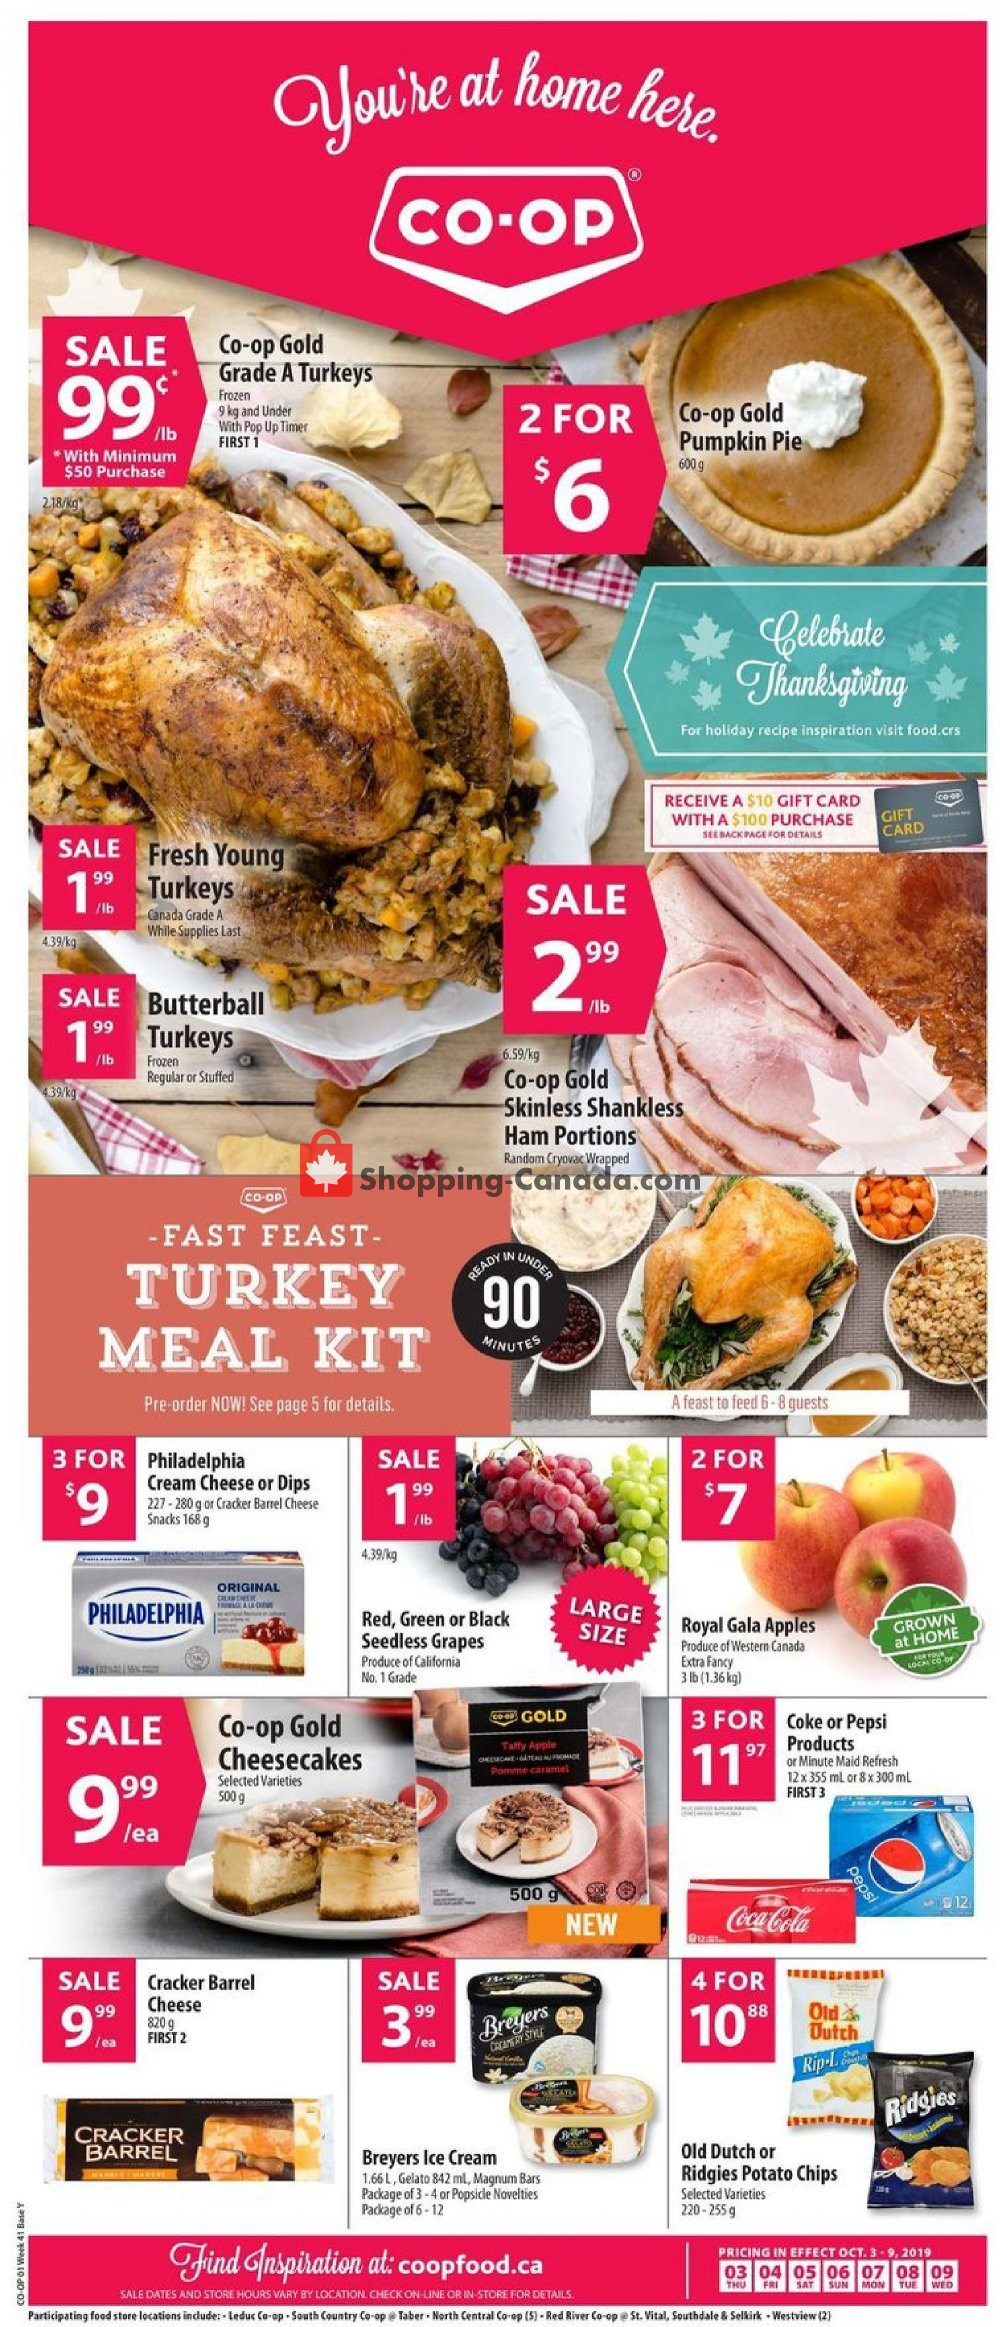 Flyer Co-op Canada - from Thursday October 3, 2019 to Wednesday October 9, 2019